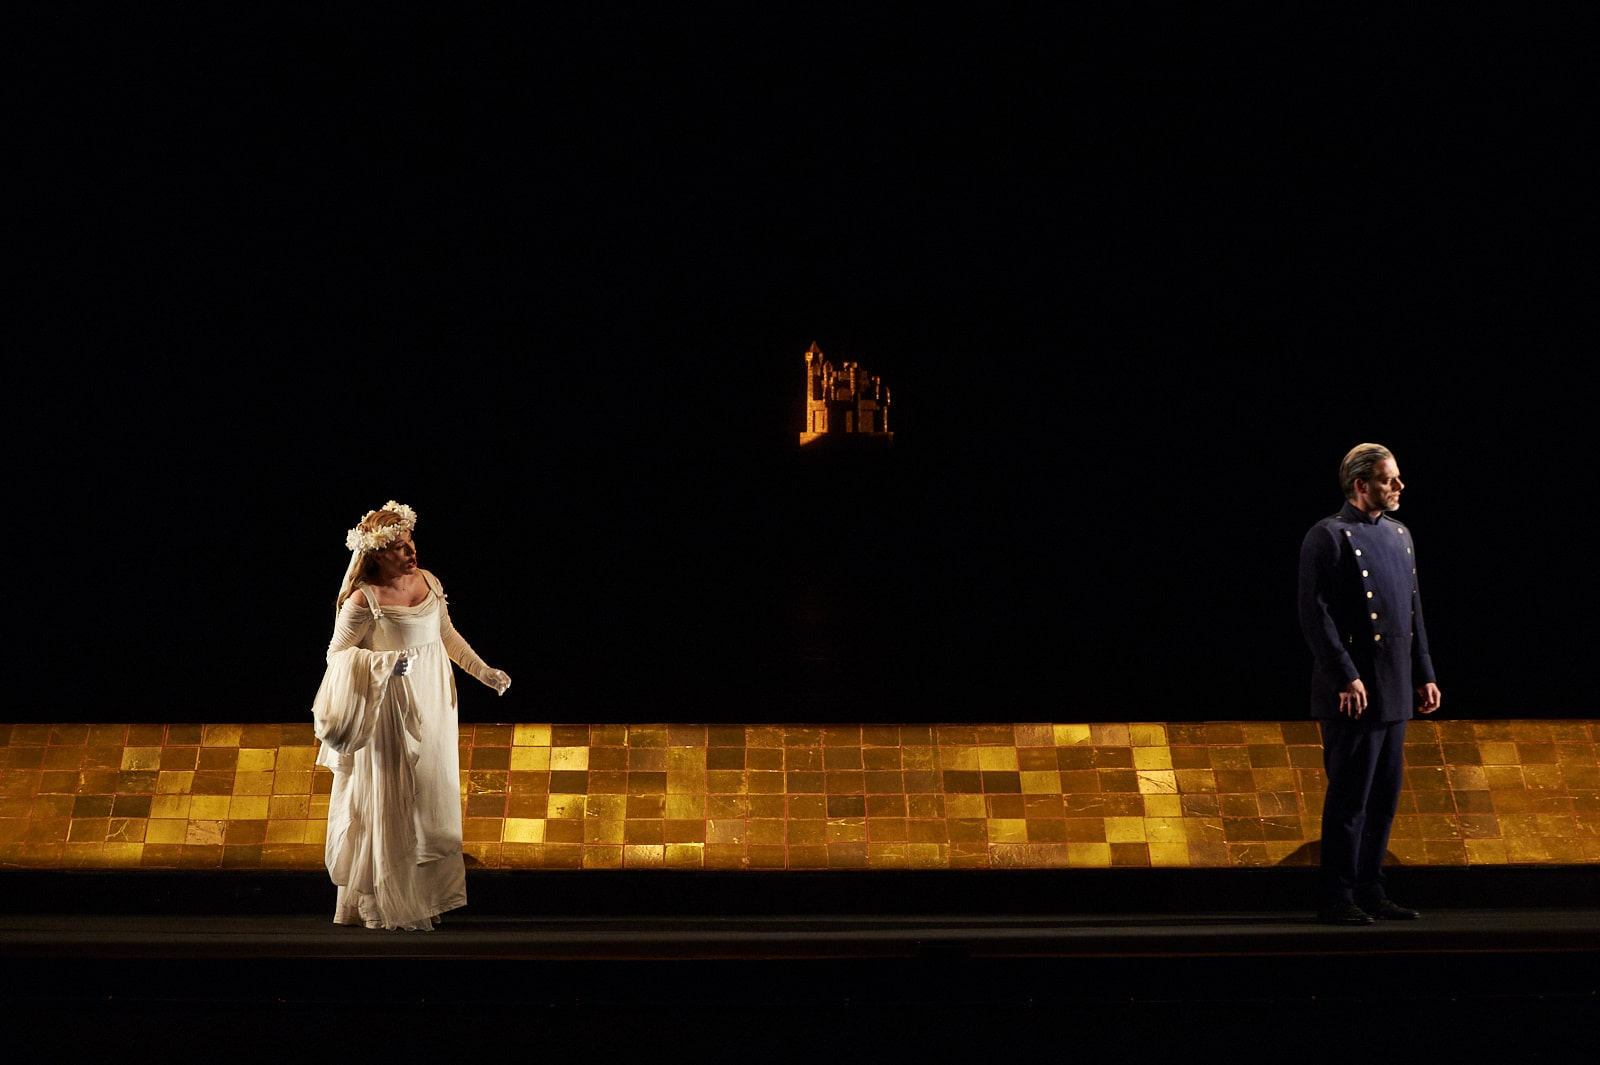 Bride with floral crown speaks to blue-uniformed man in front of gold-tiled path with miniature castle spotlight in background.